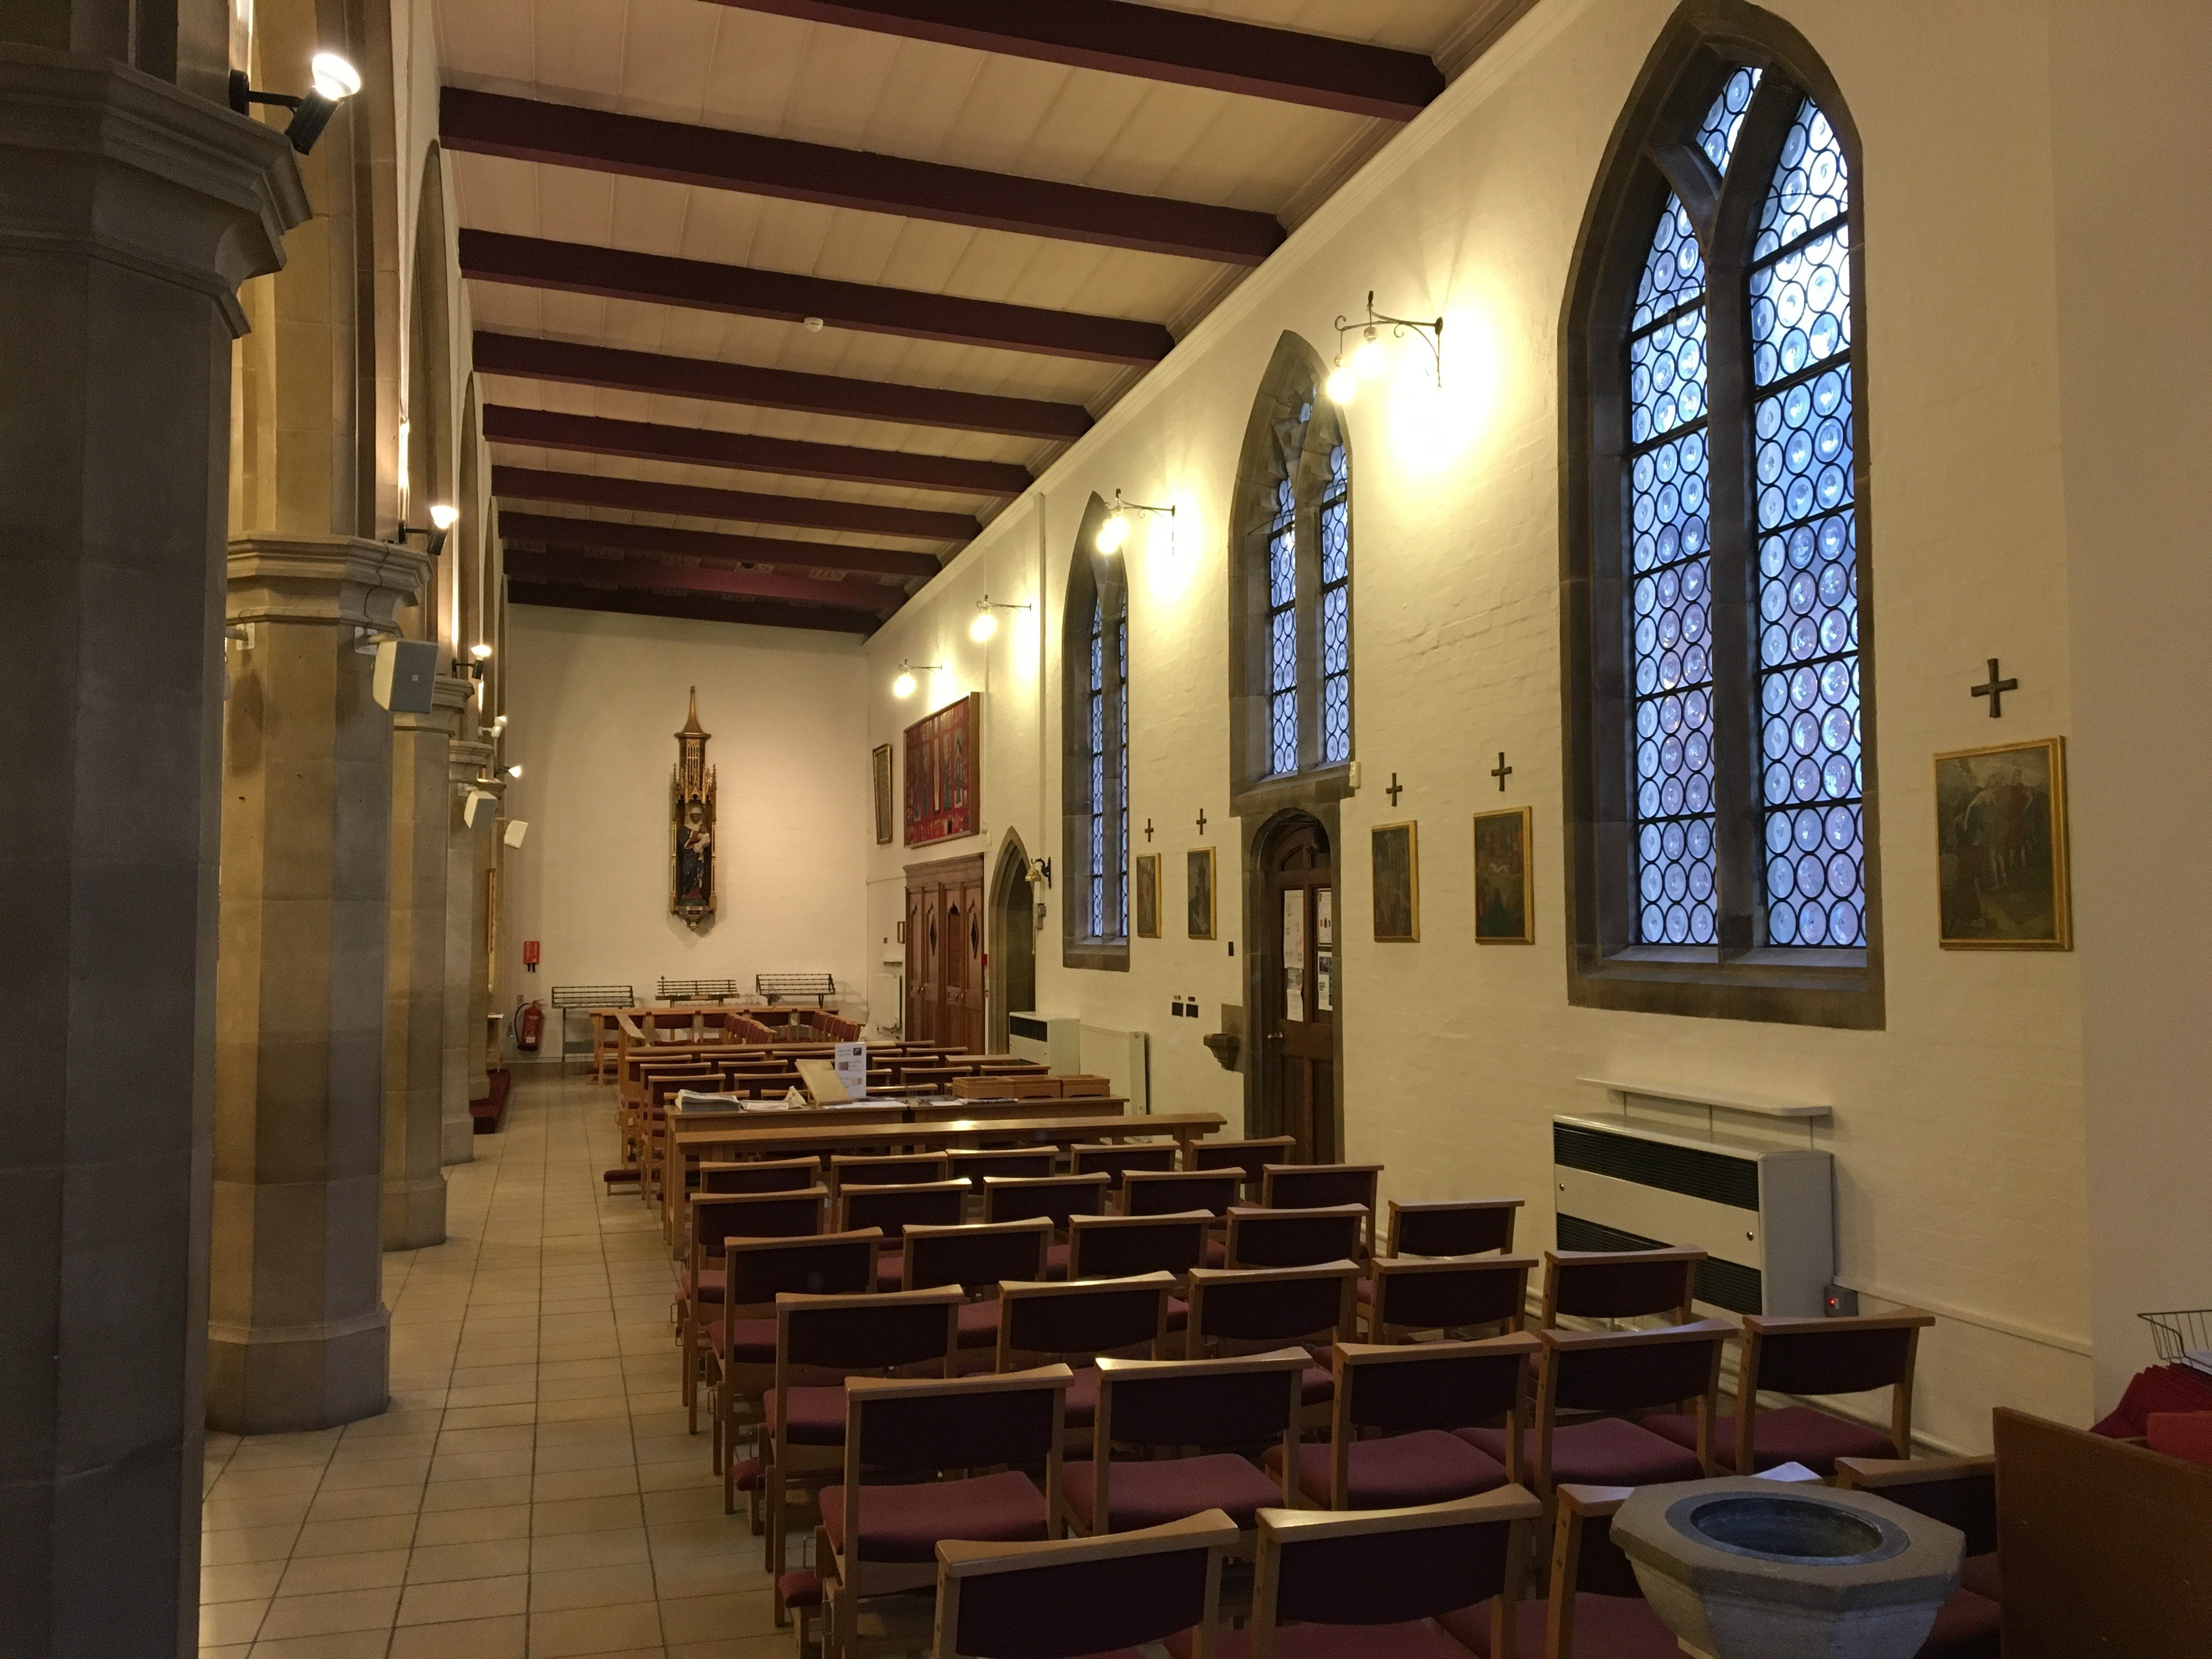 St Augustines Church Case Study